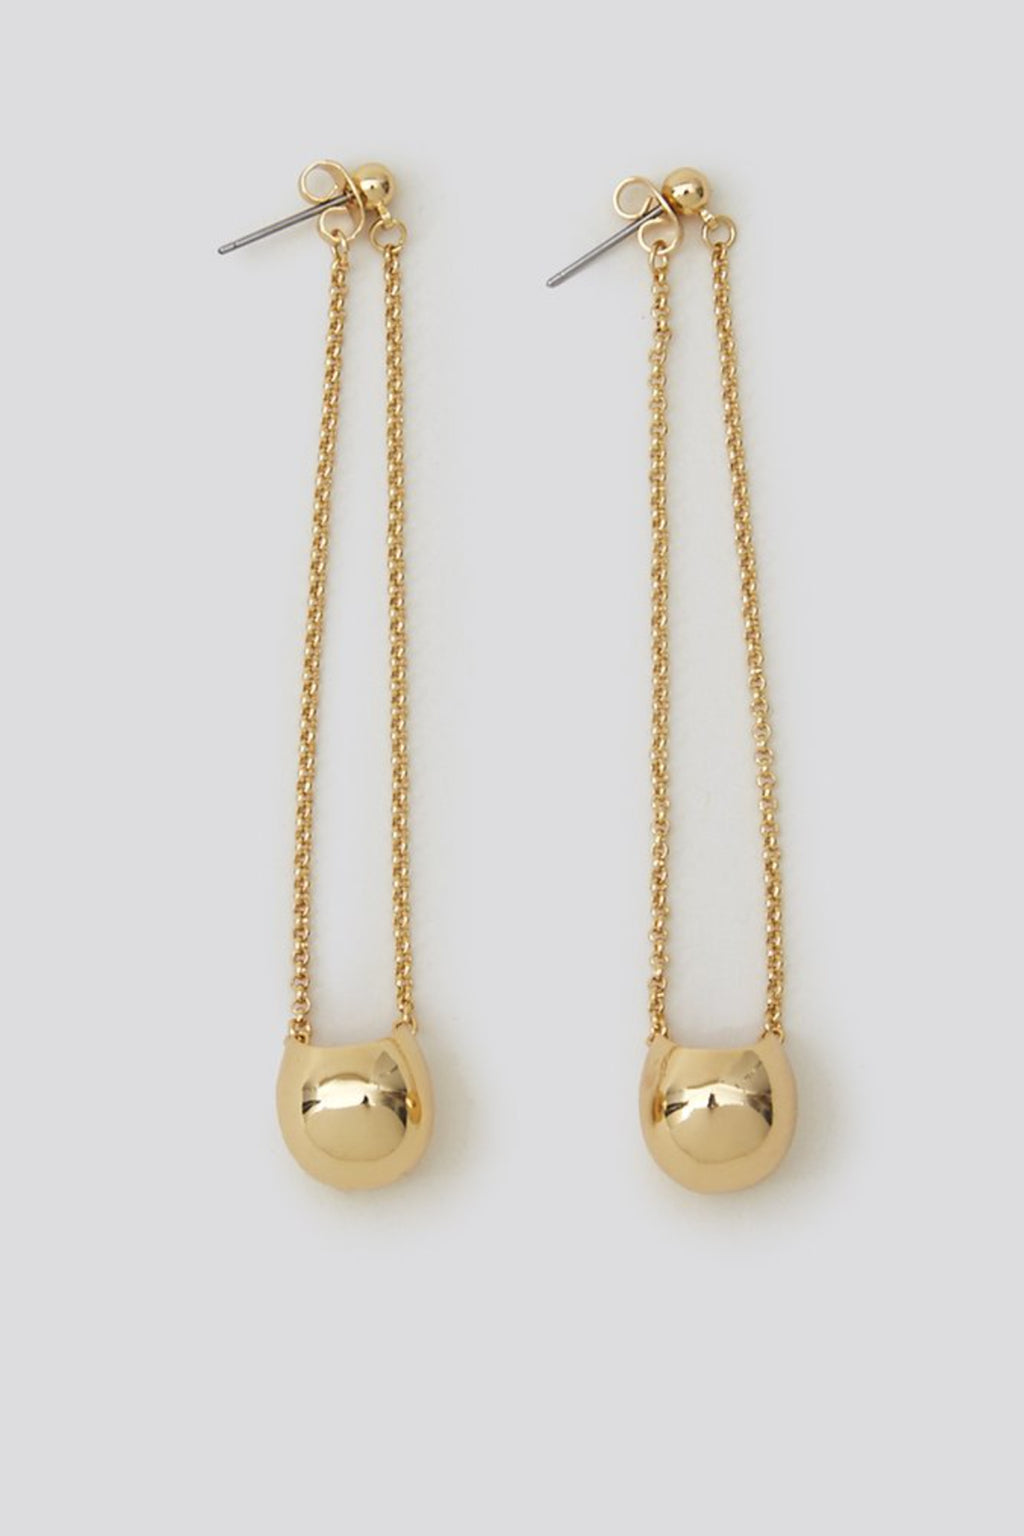 Rachel Comey Mast/ Burgee Earrings in 12k Gold Plated Silver